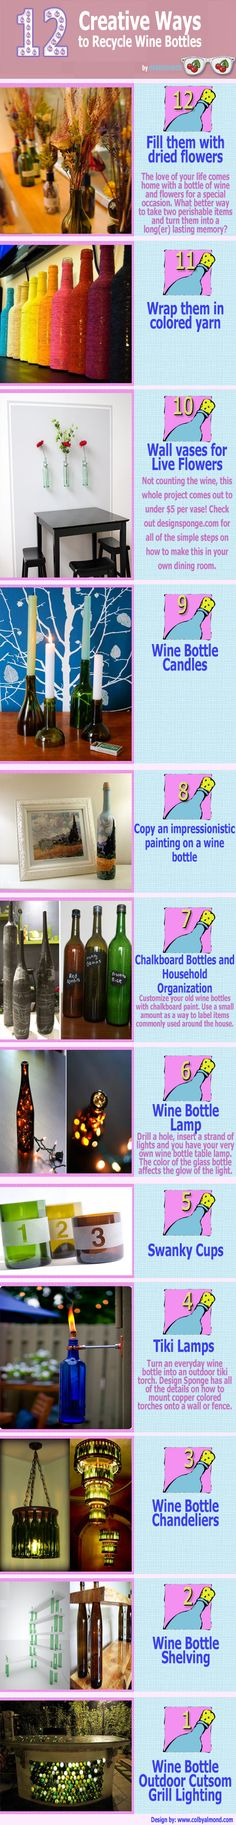 Wine Bottle Recycling